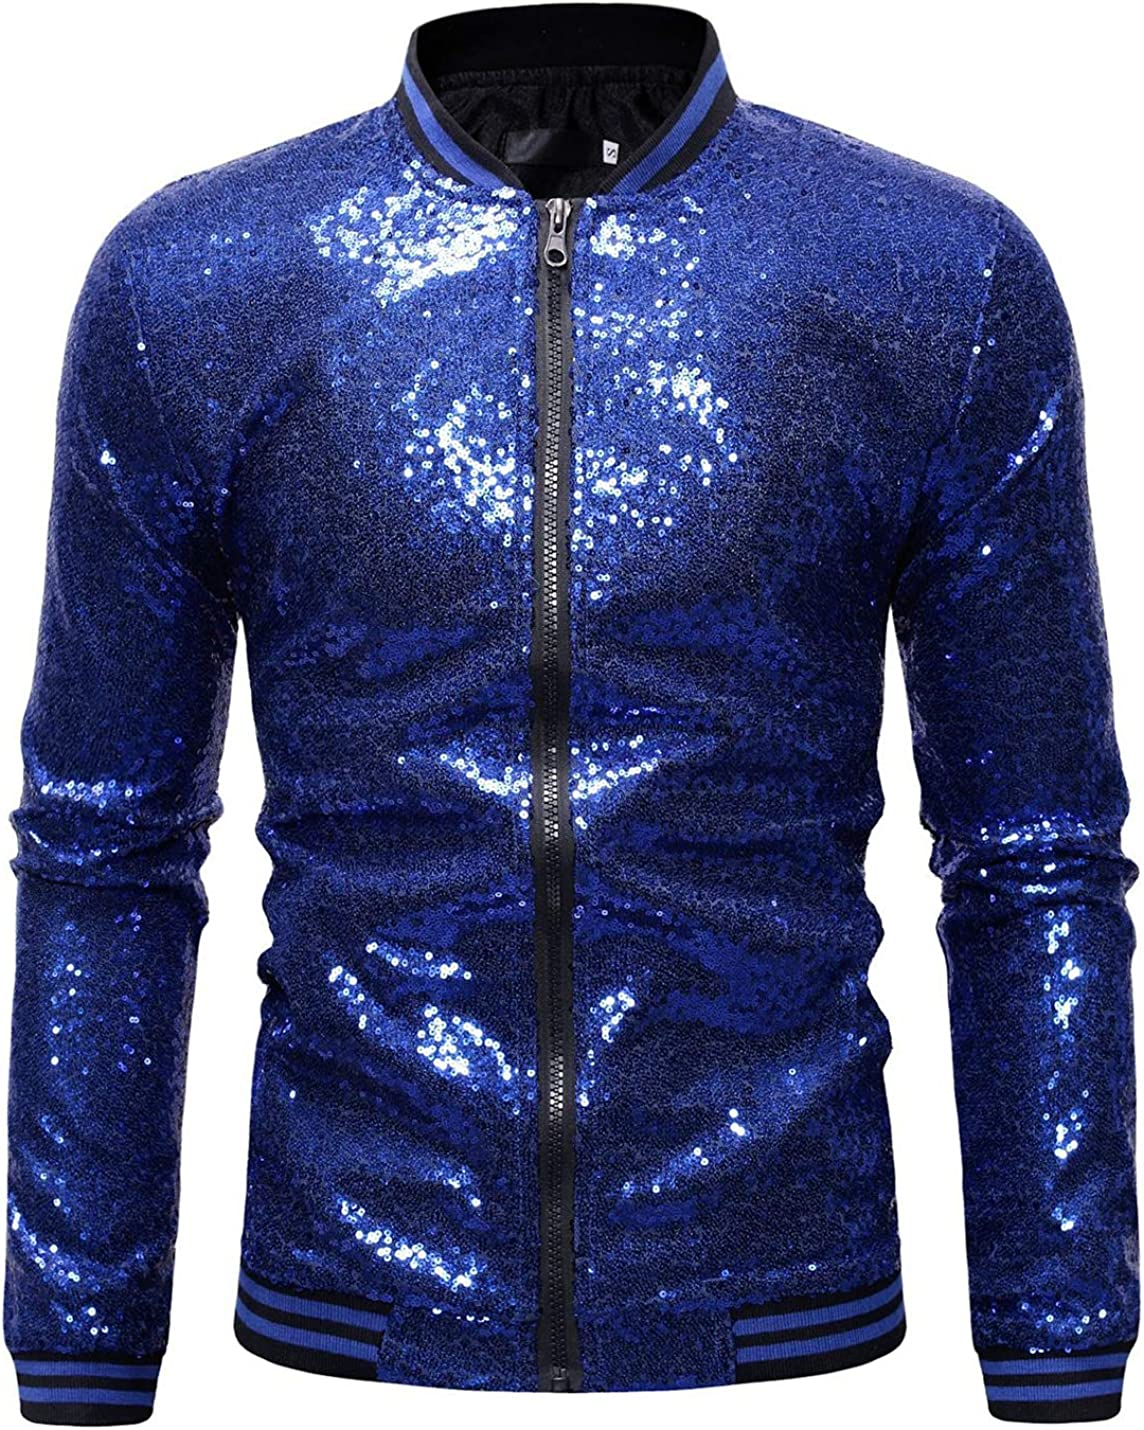 Omoone Mens Zip Up Mermaid Sequin Lightweight Shiny Clubwear Bomber Jacket